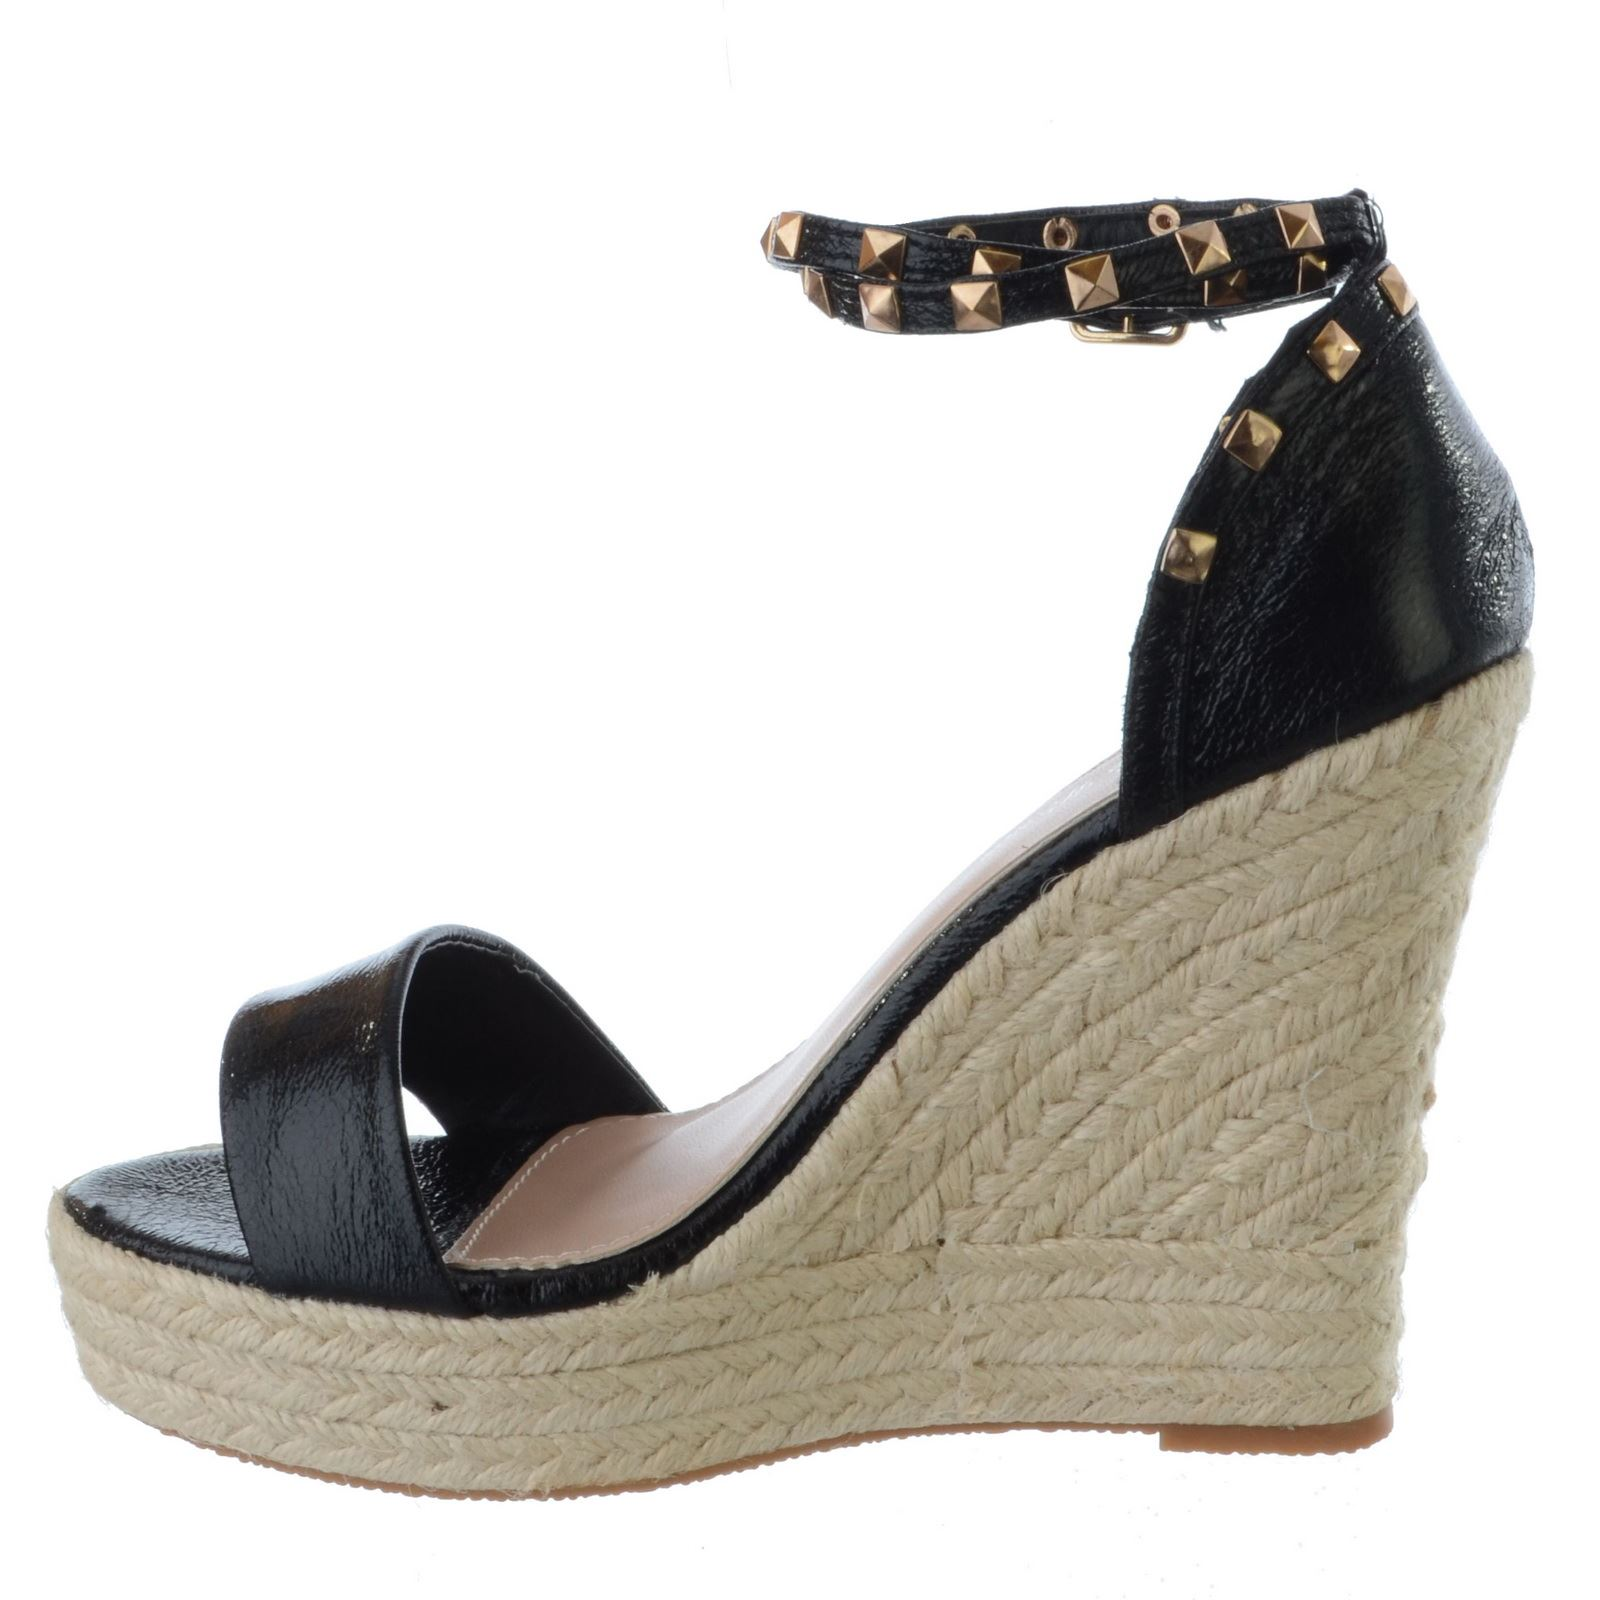 f9473961a7b LADIES WOMENS HIGH HEEL WEDGE ESPADRILLES STUDDED ANKLE STRAP ...